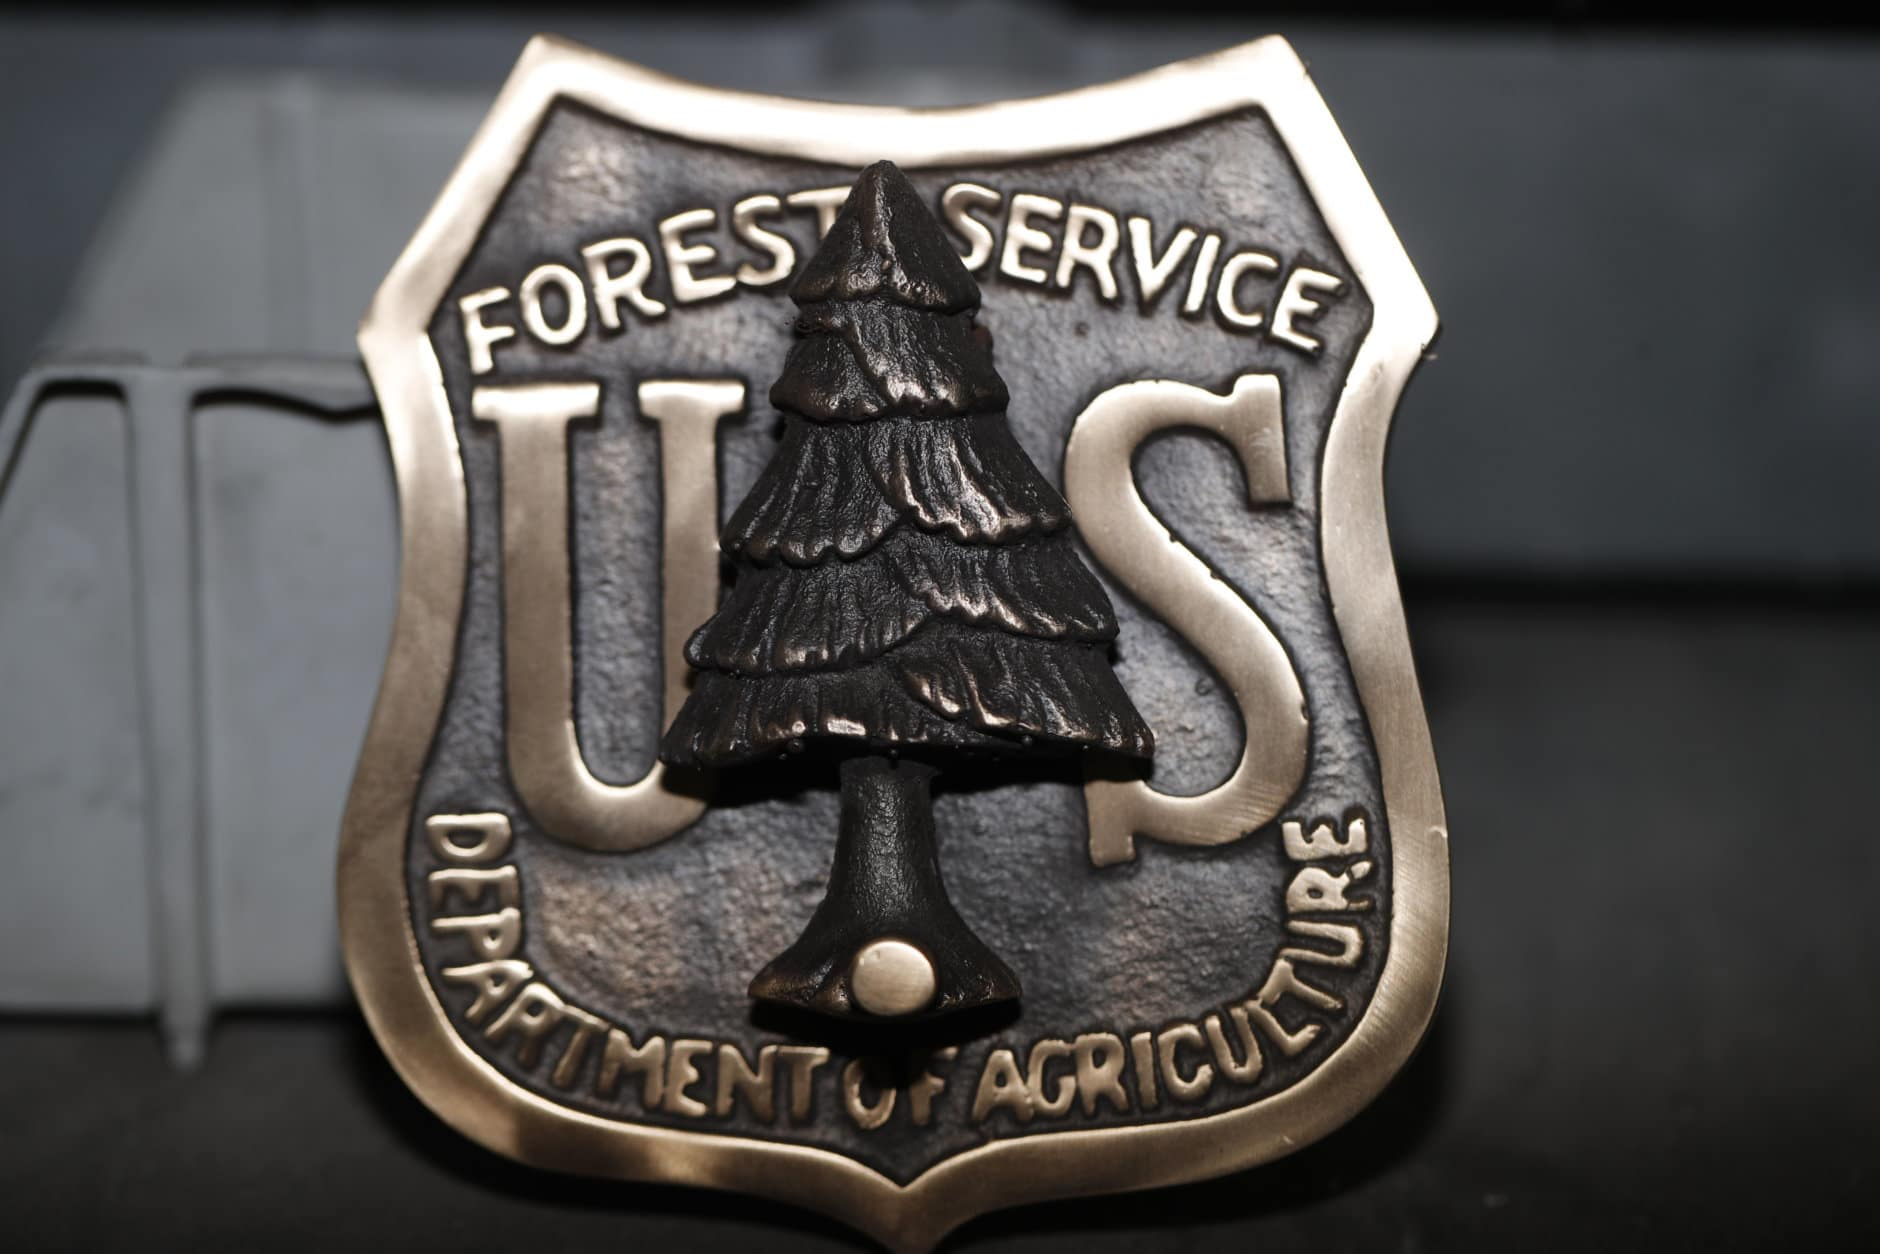 A door knocker made for the U.S. Forest Service is shown at Western Heritage Co. Thursday, Jan. 24, 2019, in Loveland, Colo. Lynch saw online orders collapse almost immediately after the government shut down Dec. 22. The company sells buckles, keychains, commemorative coins and badges to employees of the Fish and Wildlife Service, the Forest Service, the Bureau of Land Management and other agencies. It also sells patches and some clothing. (AP Photo/David Zalubowski)